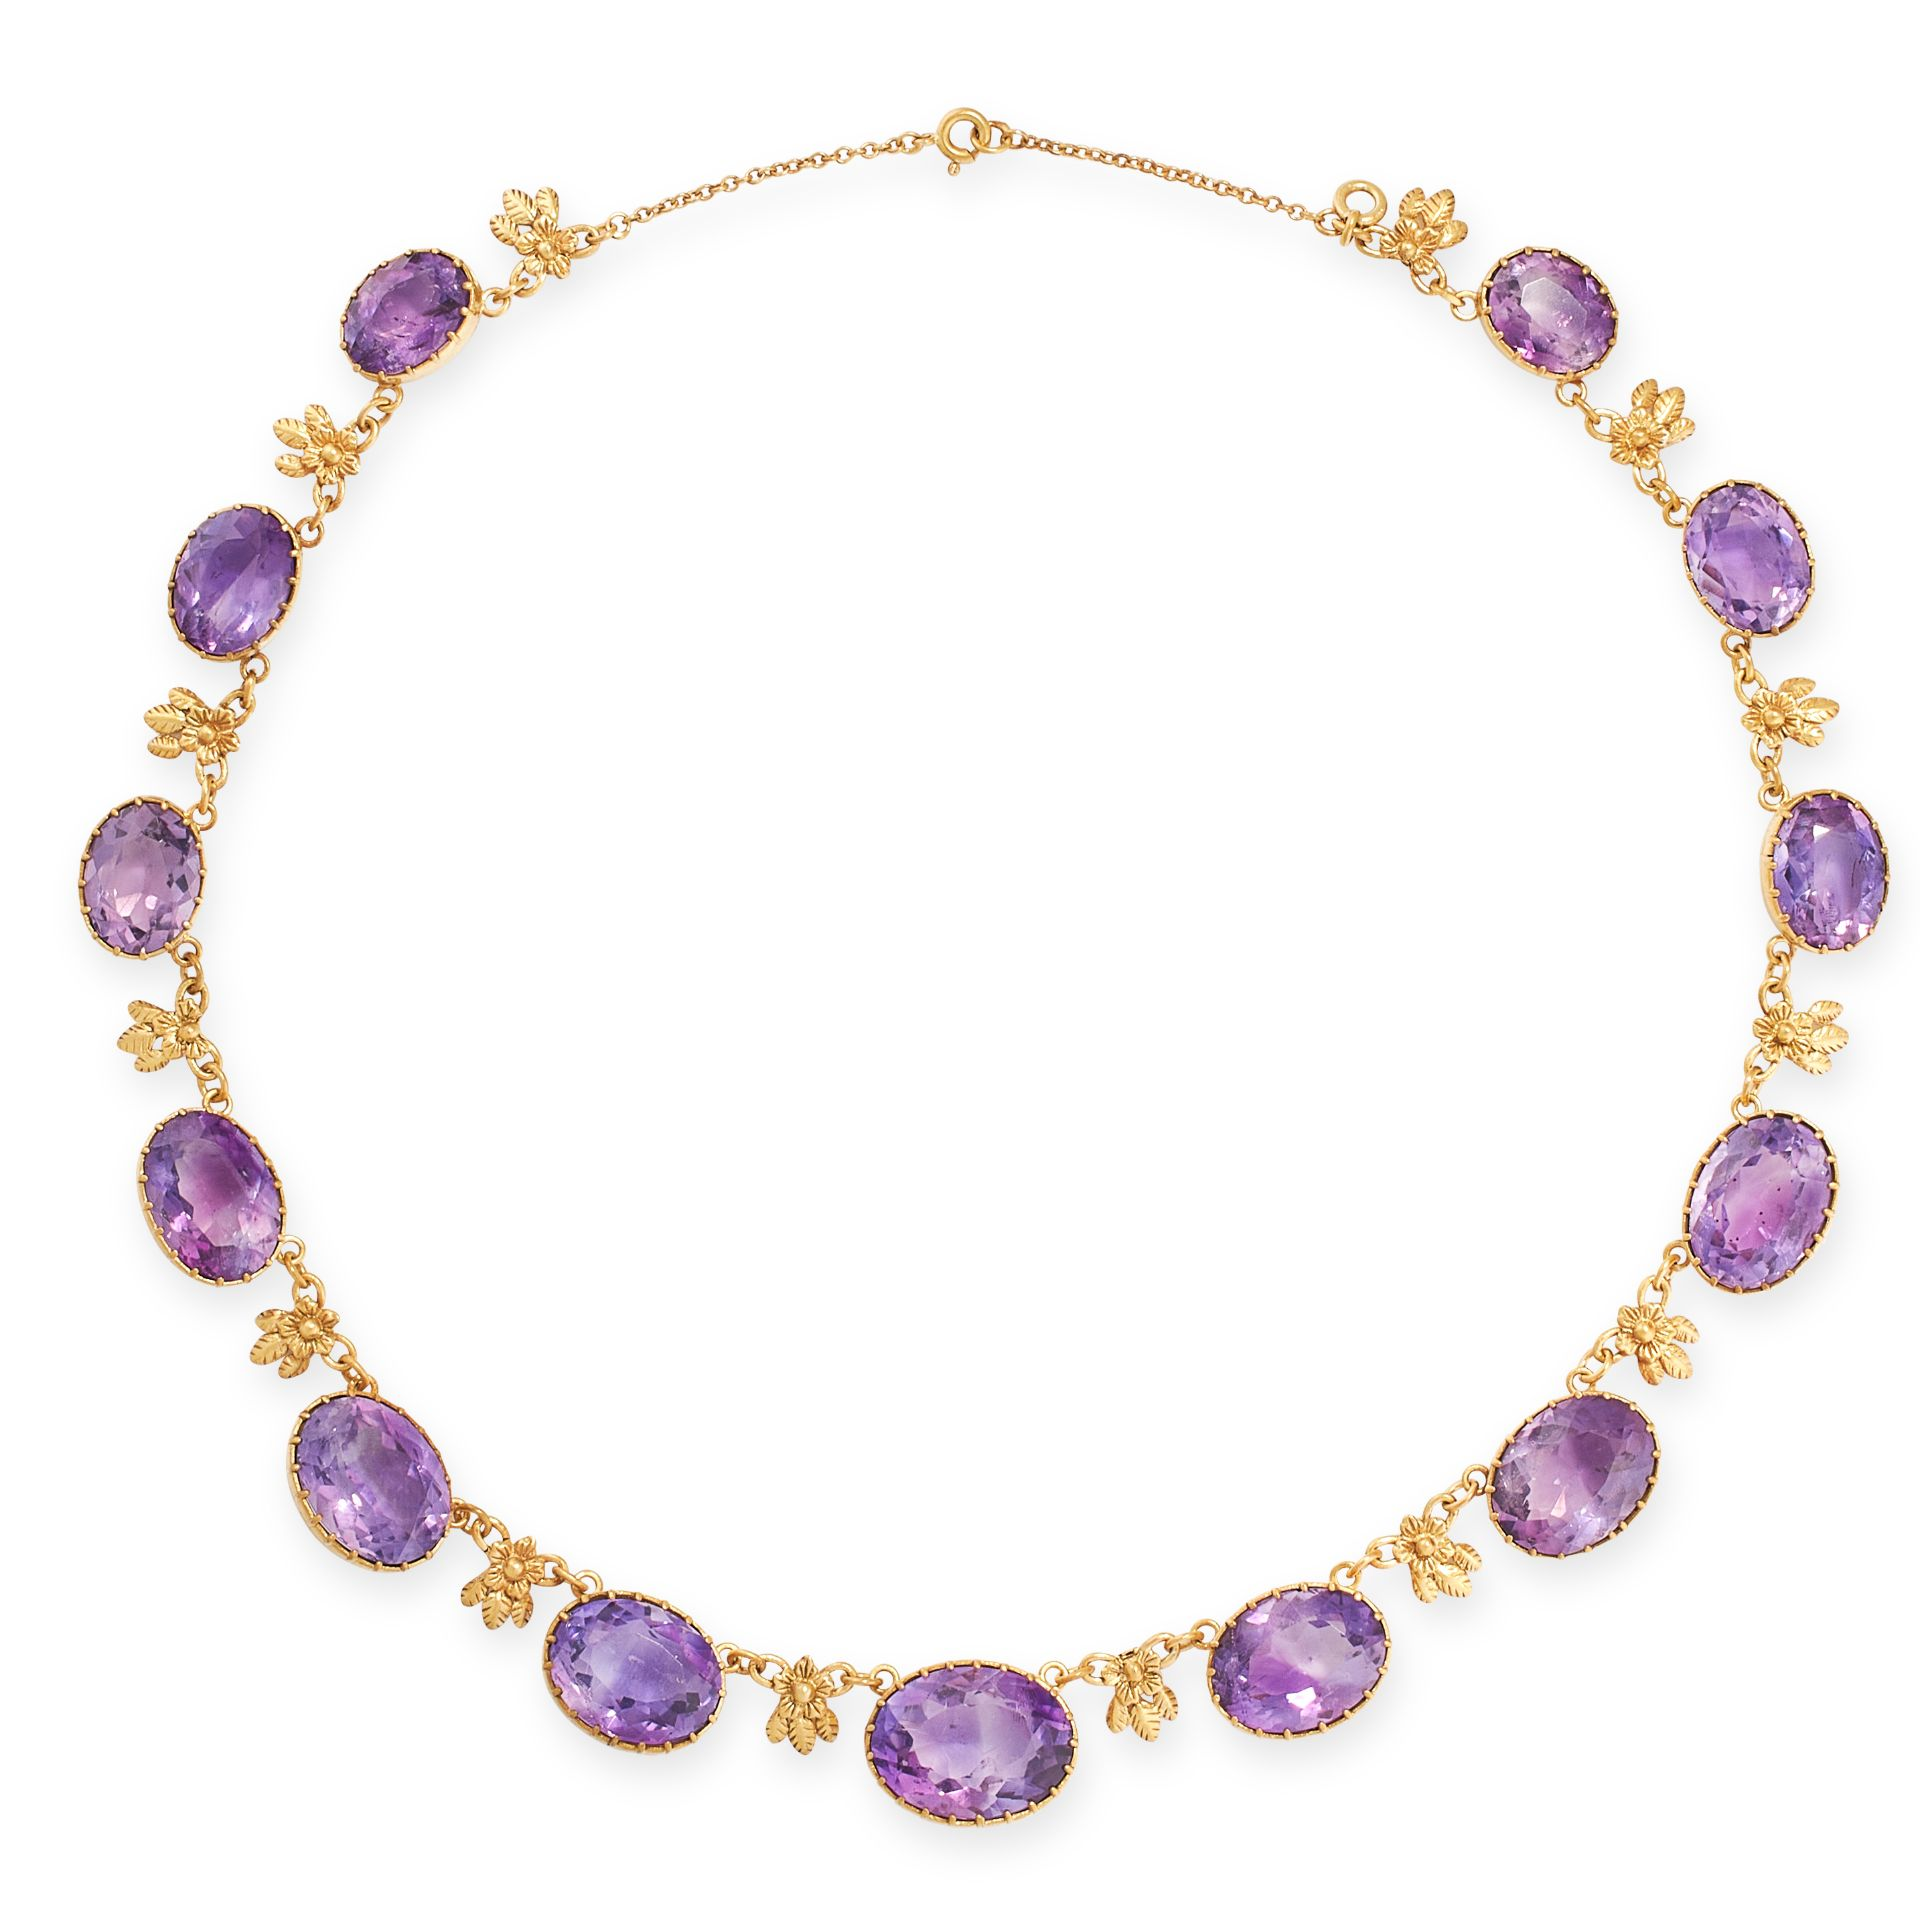 AN ANTIQUE AMETHYST RIVIERE NECKLACE, 19TH CENTURY comprising a single row of thirteen graduated